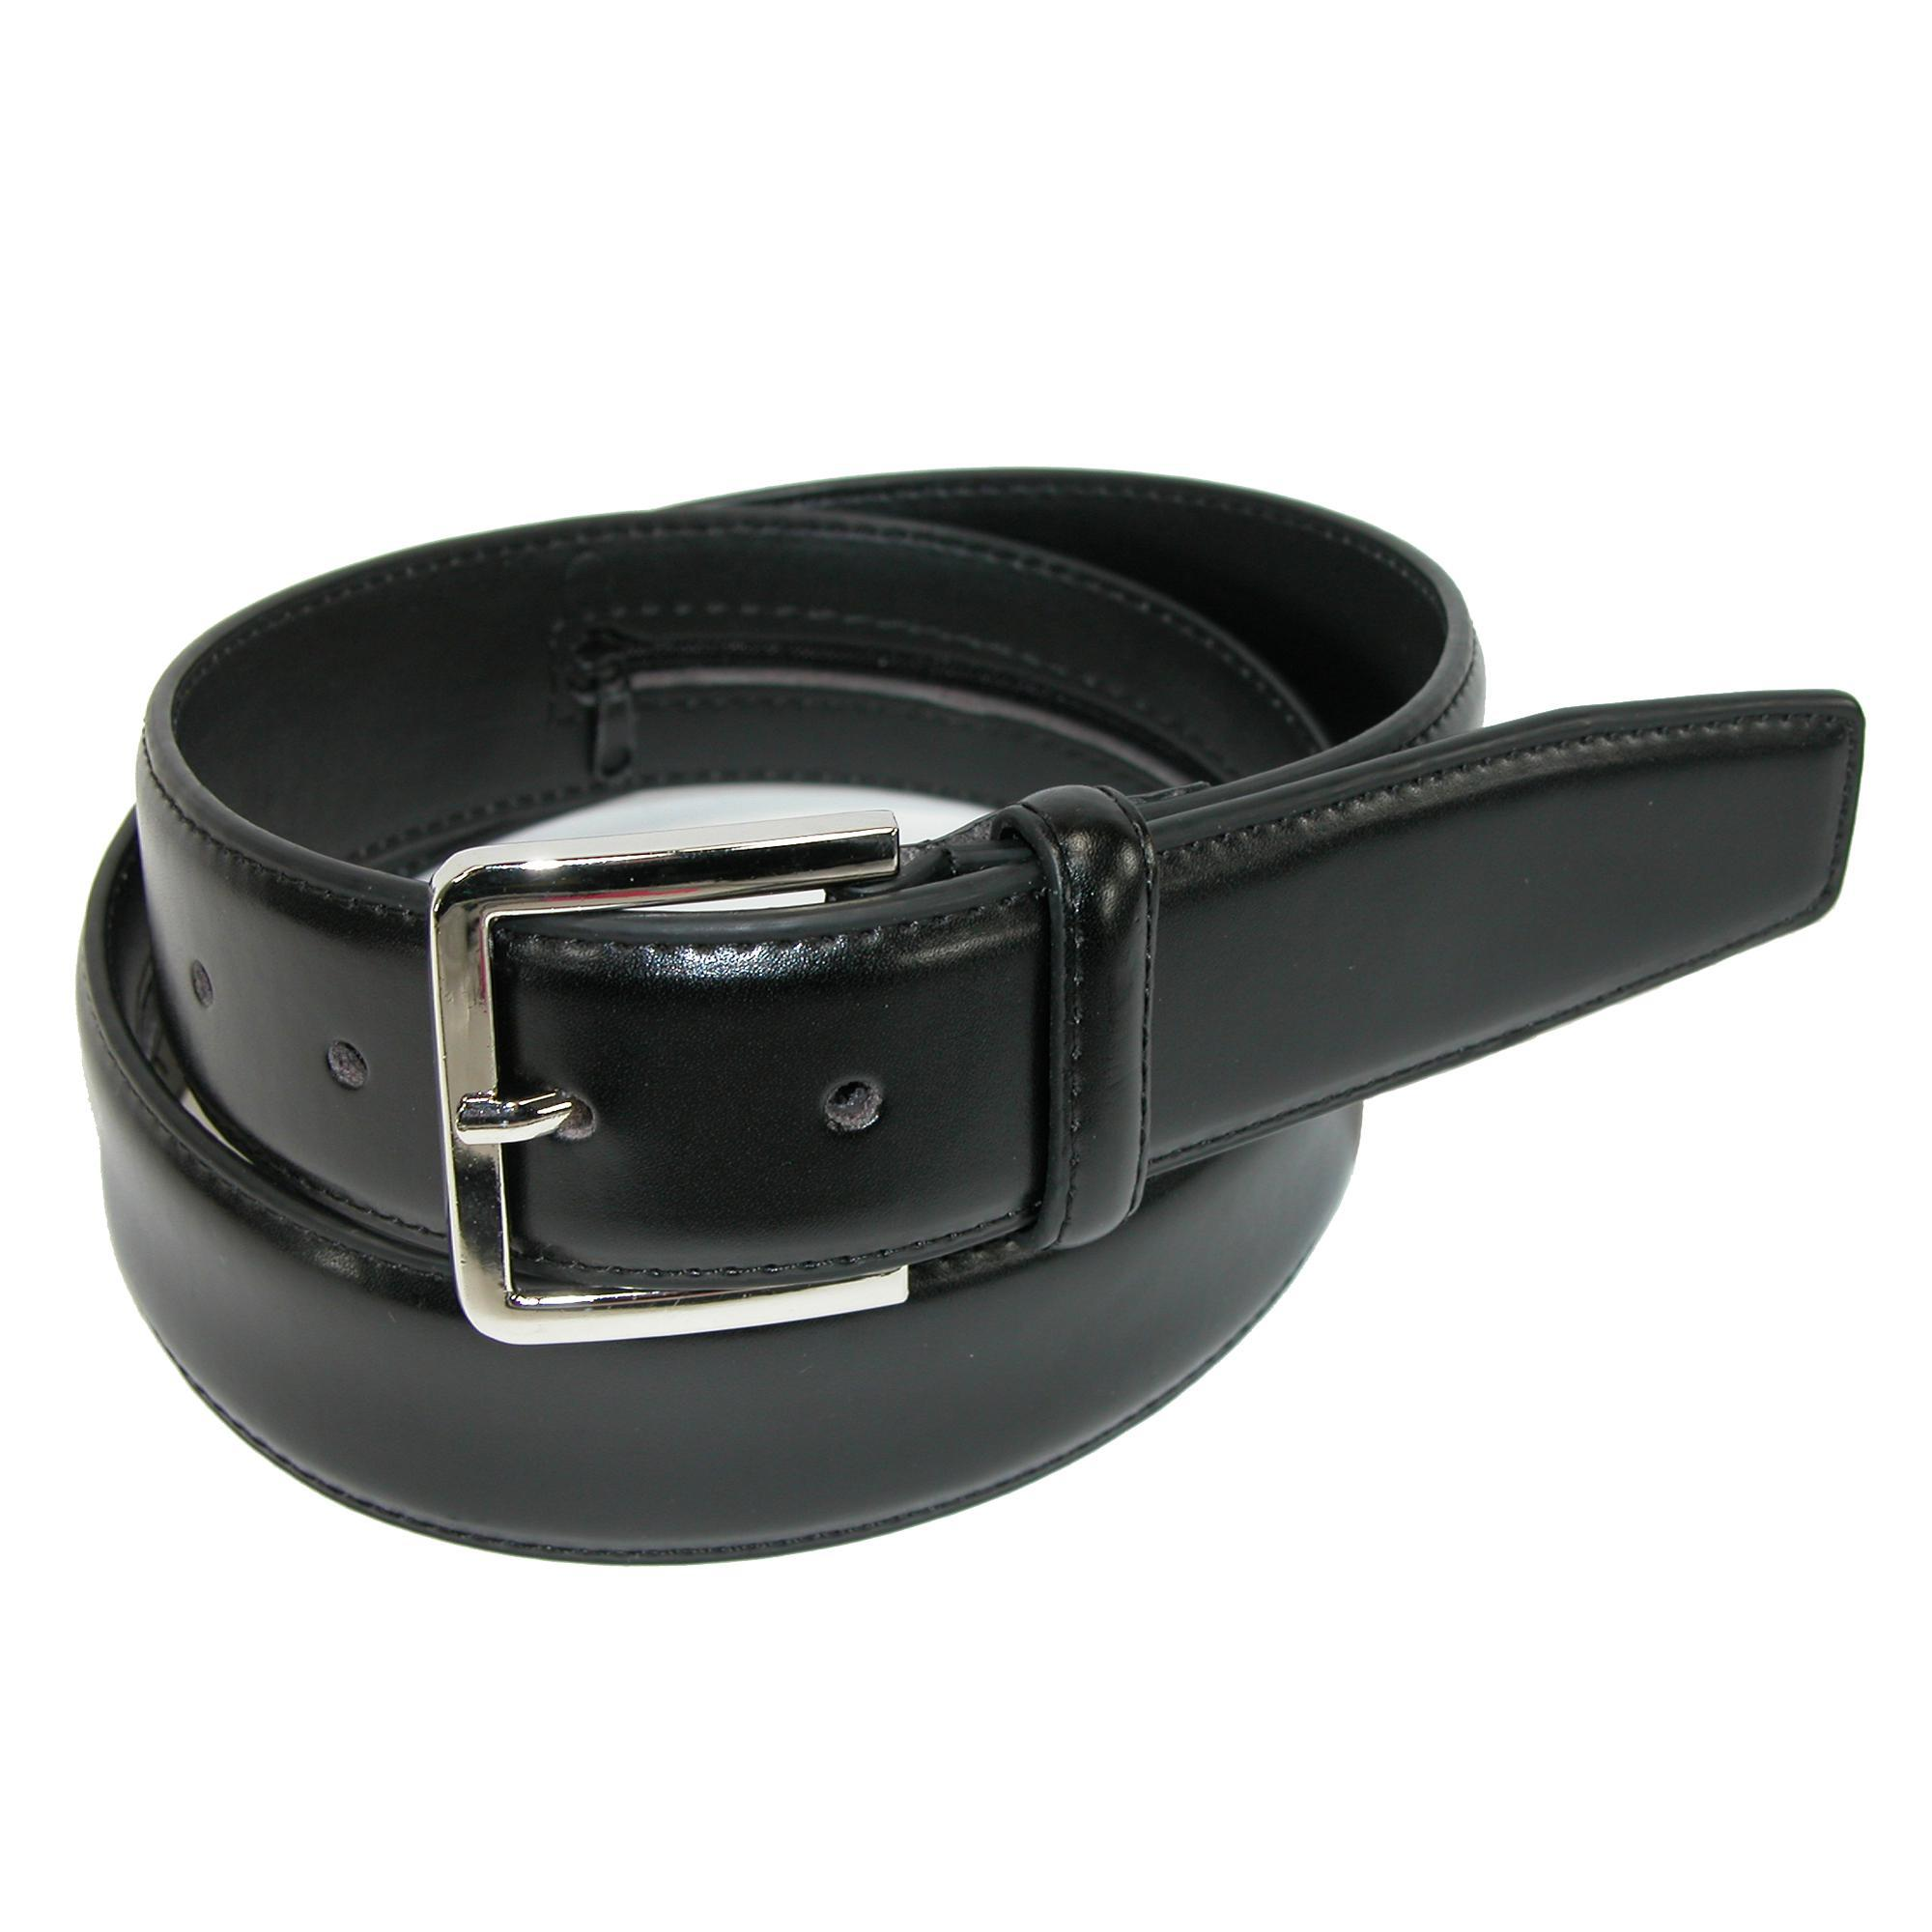 CTM_Mens_Leather_Travel_Money_Belt_Large_Sizes_Available_